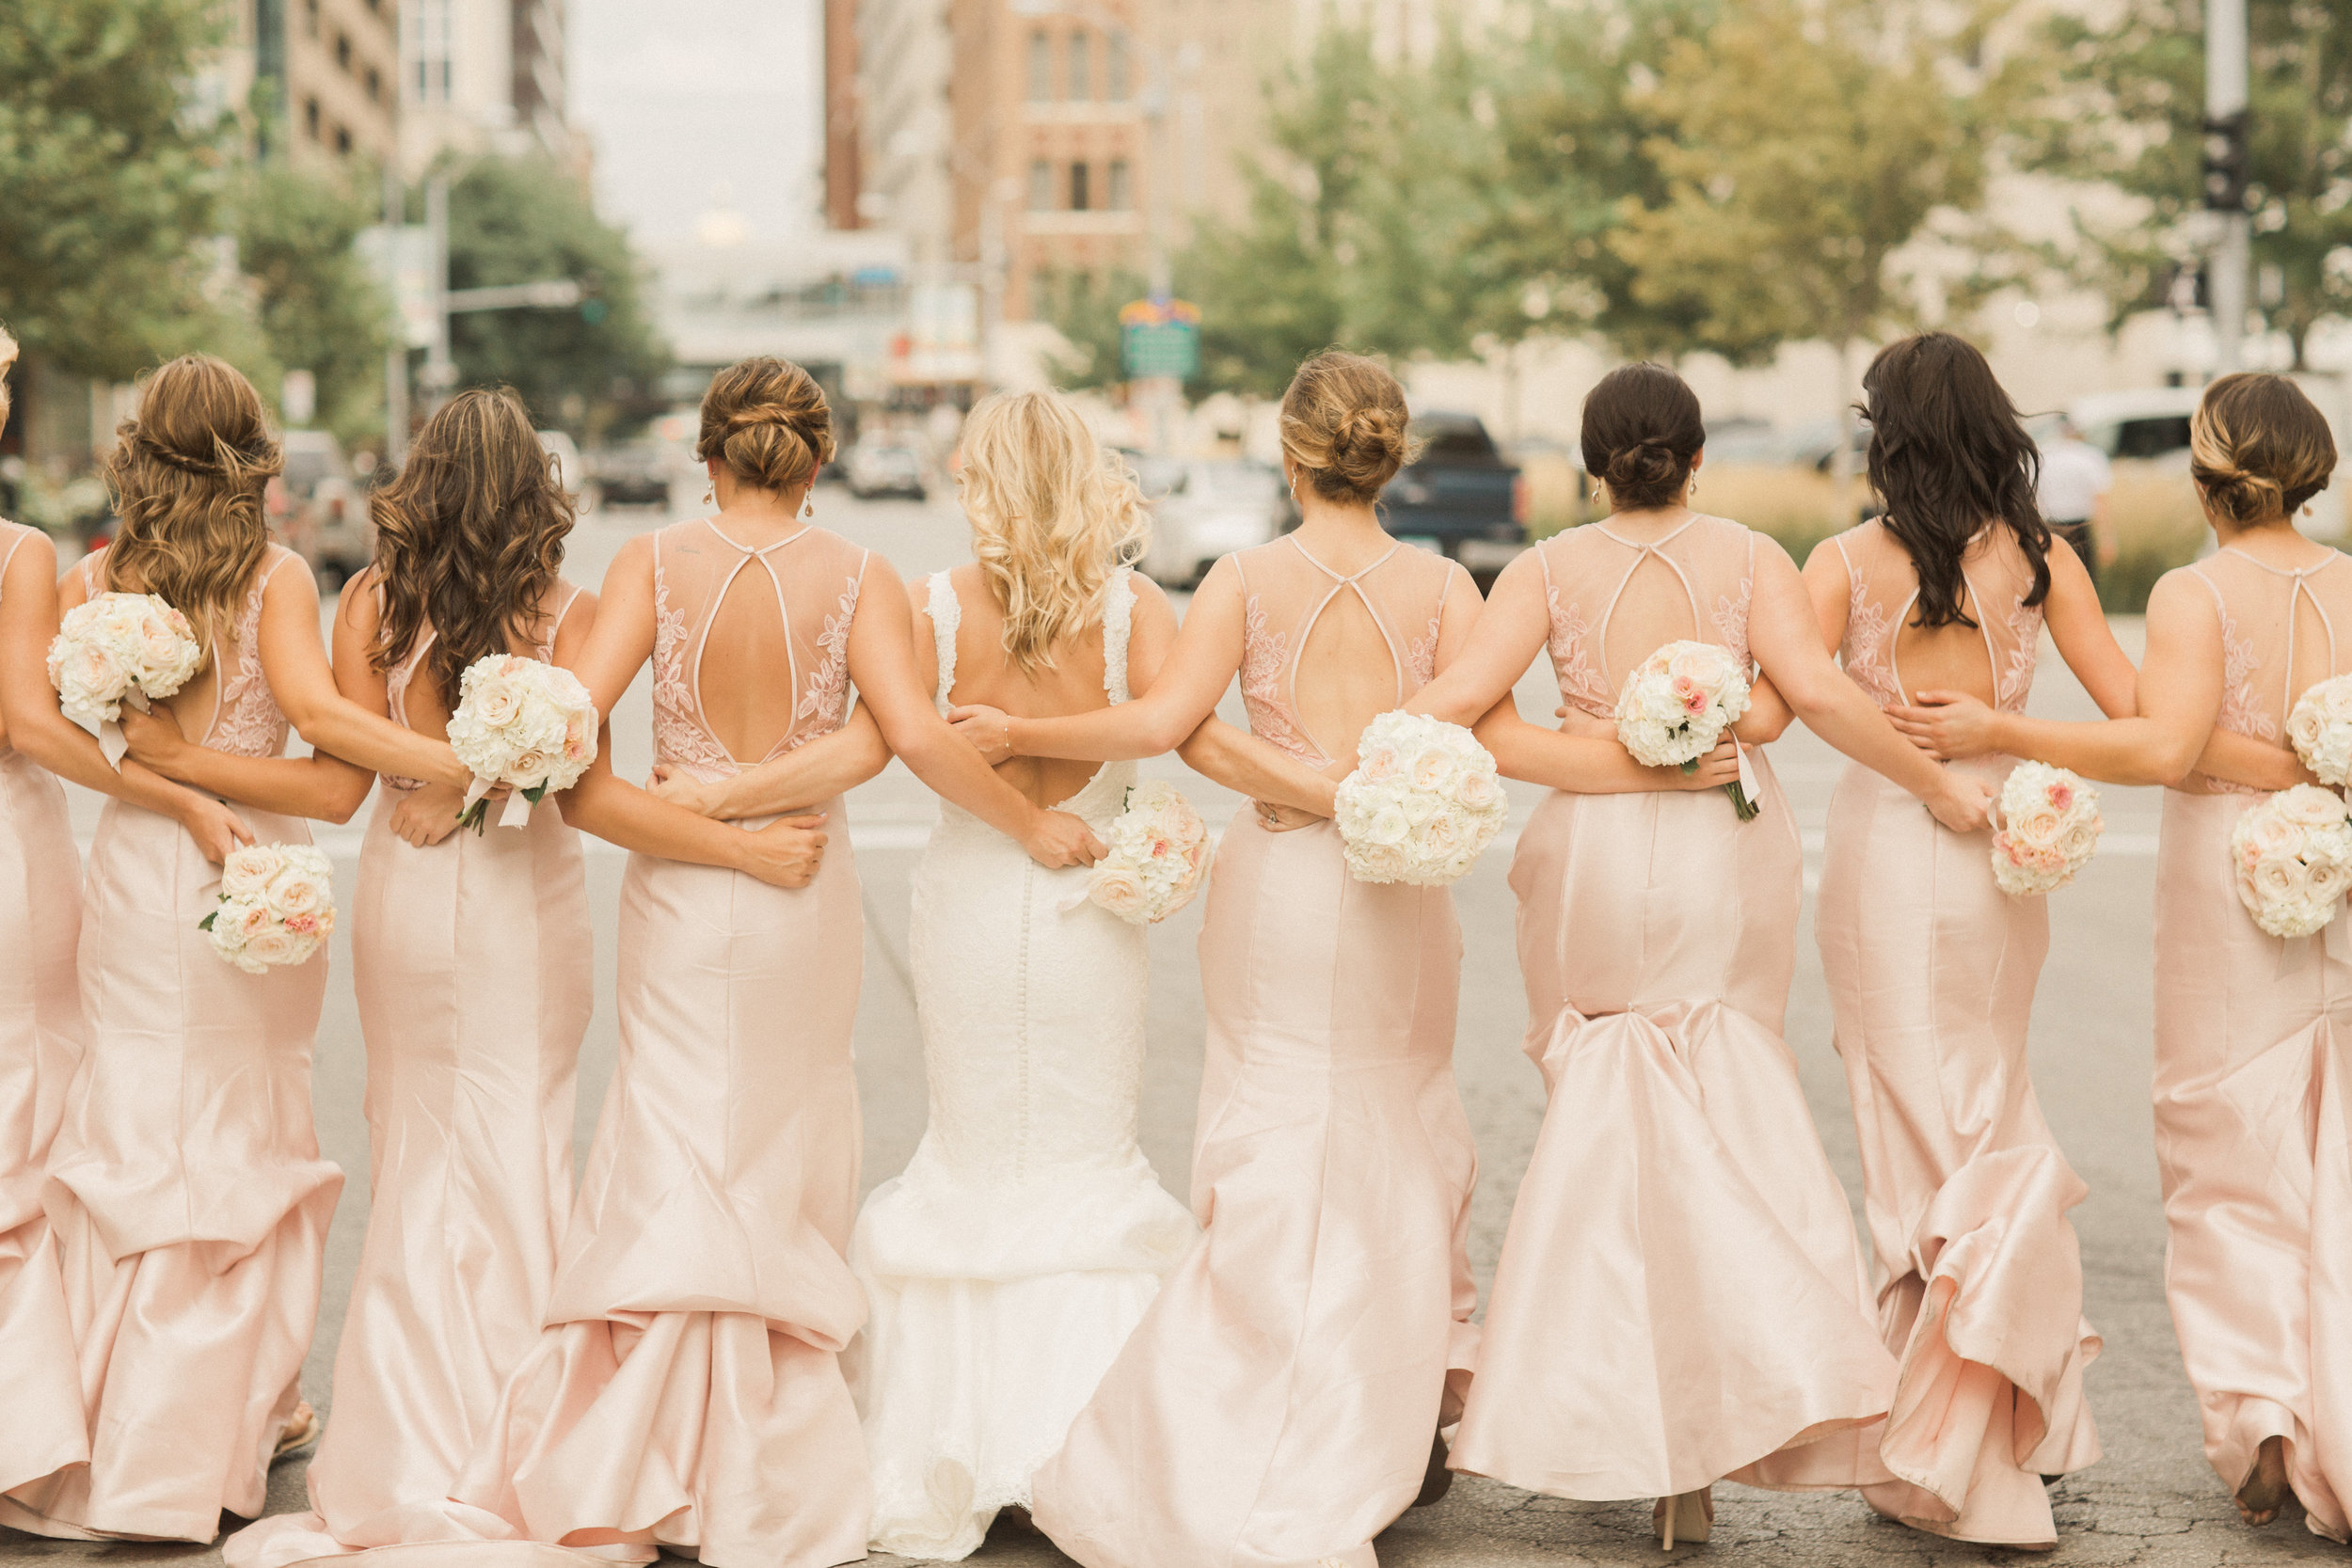 iowa-wedding-iowa-venue-blush-white-pink-bridesmaids-dresses-downtown-desmoines-planned-mostly-becky-weddings-outdoor-bridal-party-photos-black-tux-black-tie-event-bridesmaids-bridal-party-photos